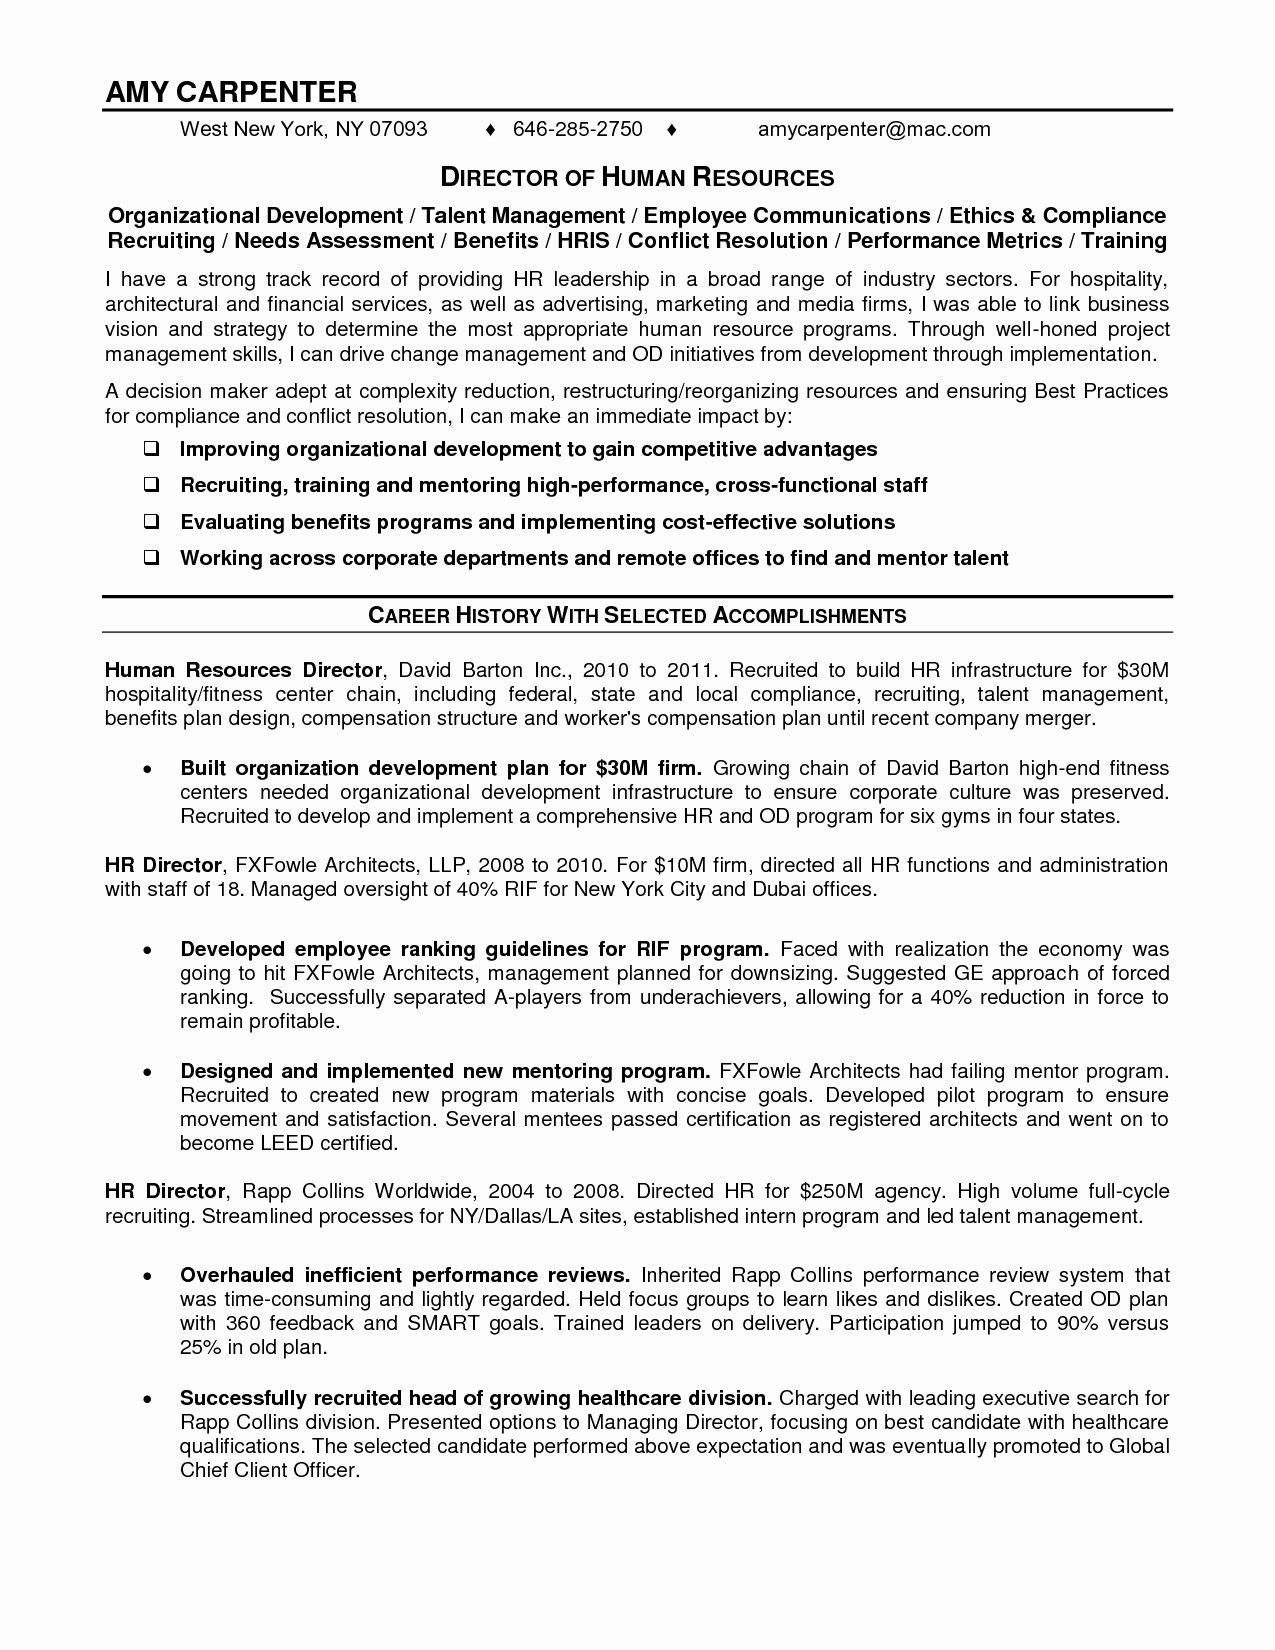 Cover Letter Template Doc - Resume Template Doc Inspirational Free Resume Cover Letter Template